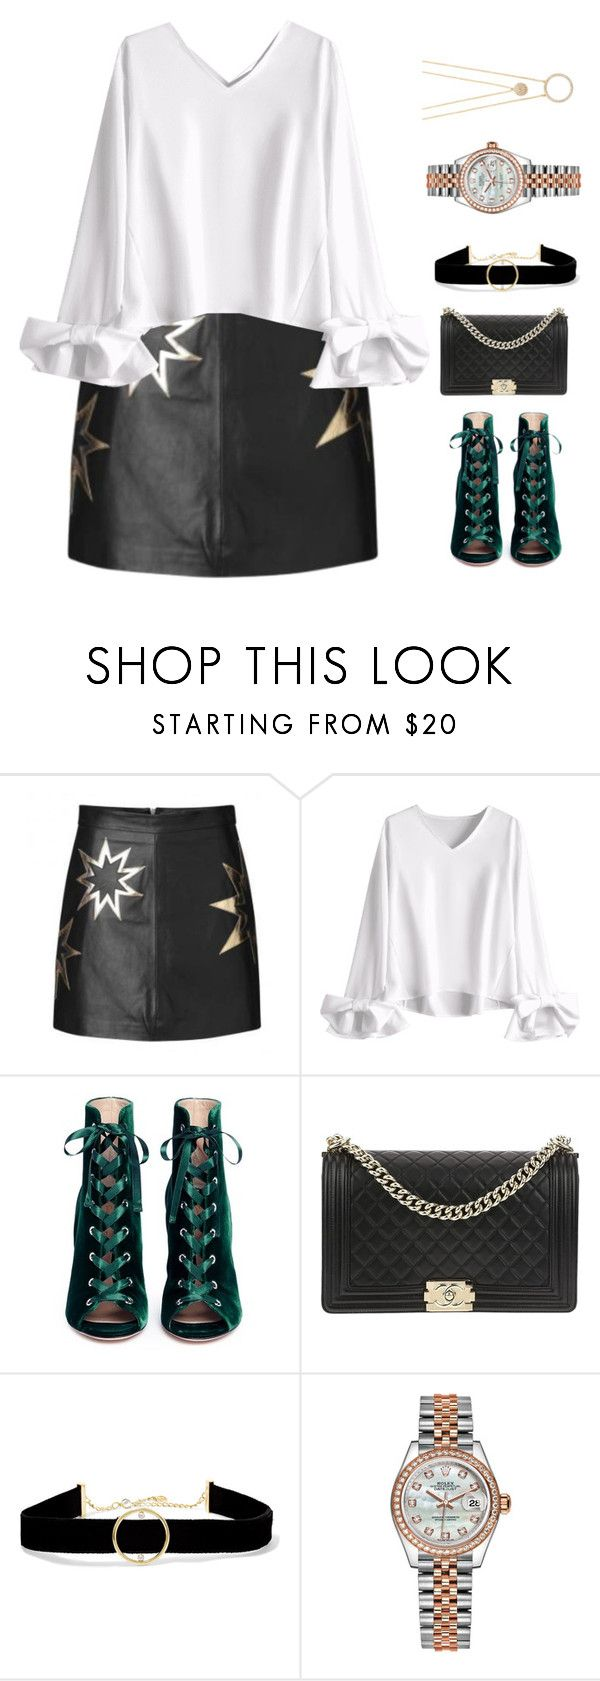 """""""~twinkle twinkle~"""" by queenshaima ❤ liked on Polyvore featuring Gianvito Rossi, Chanel, Anissa Kermiche, Rolex, Kate Spade and StarOutfits"""